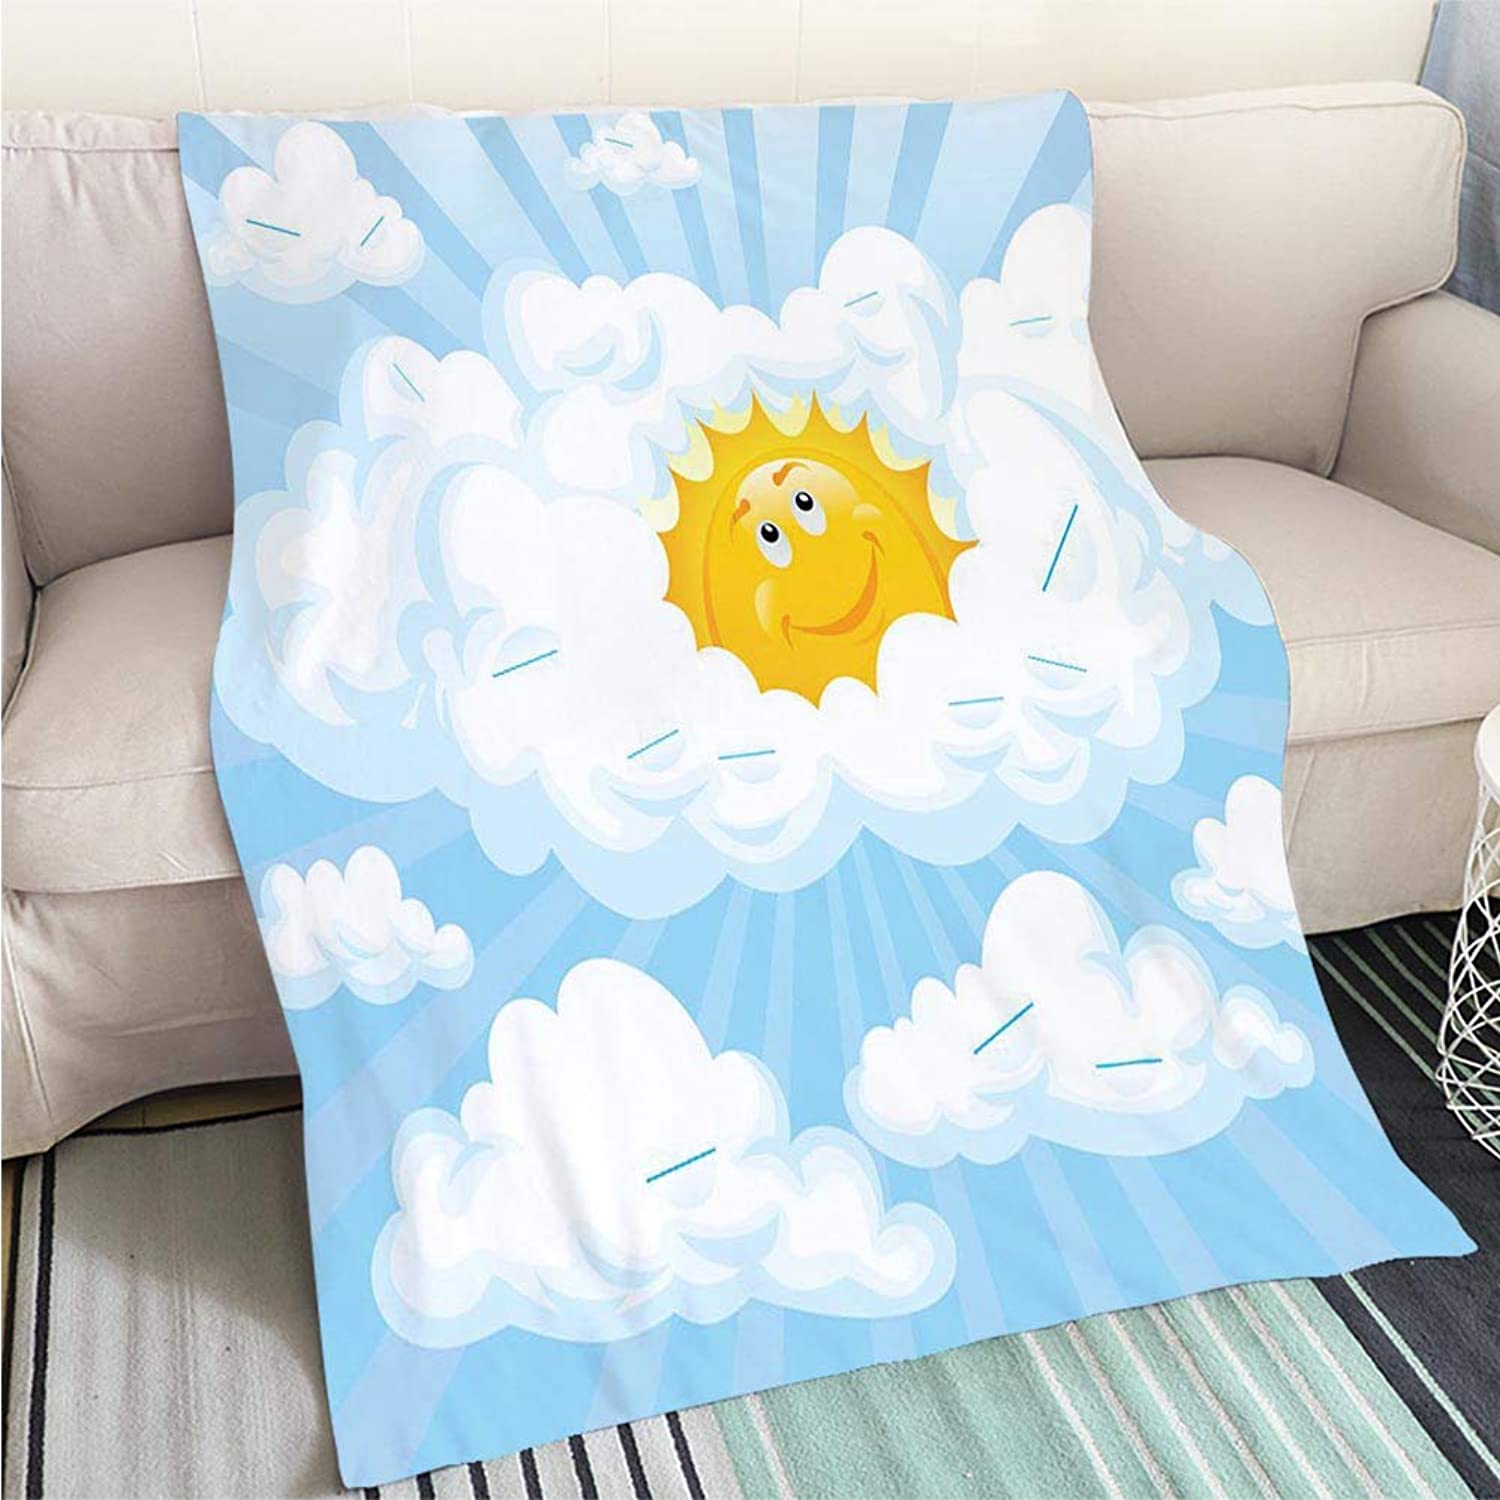 BEICICI Creative Flannel Printed Blanket for Warm Bedroom Sun peaking Through Clouds Sofa Bed or Bed 3D Printing Cool Quilt